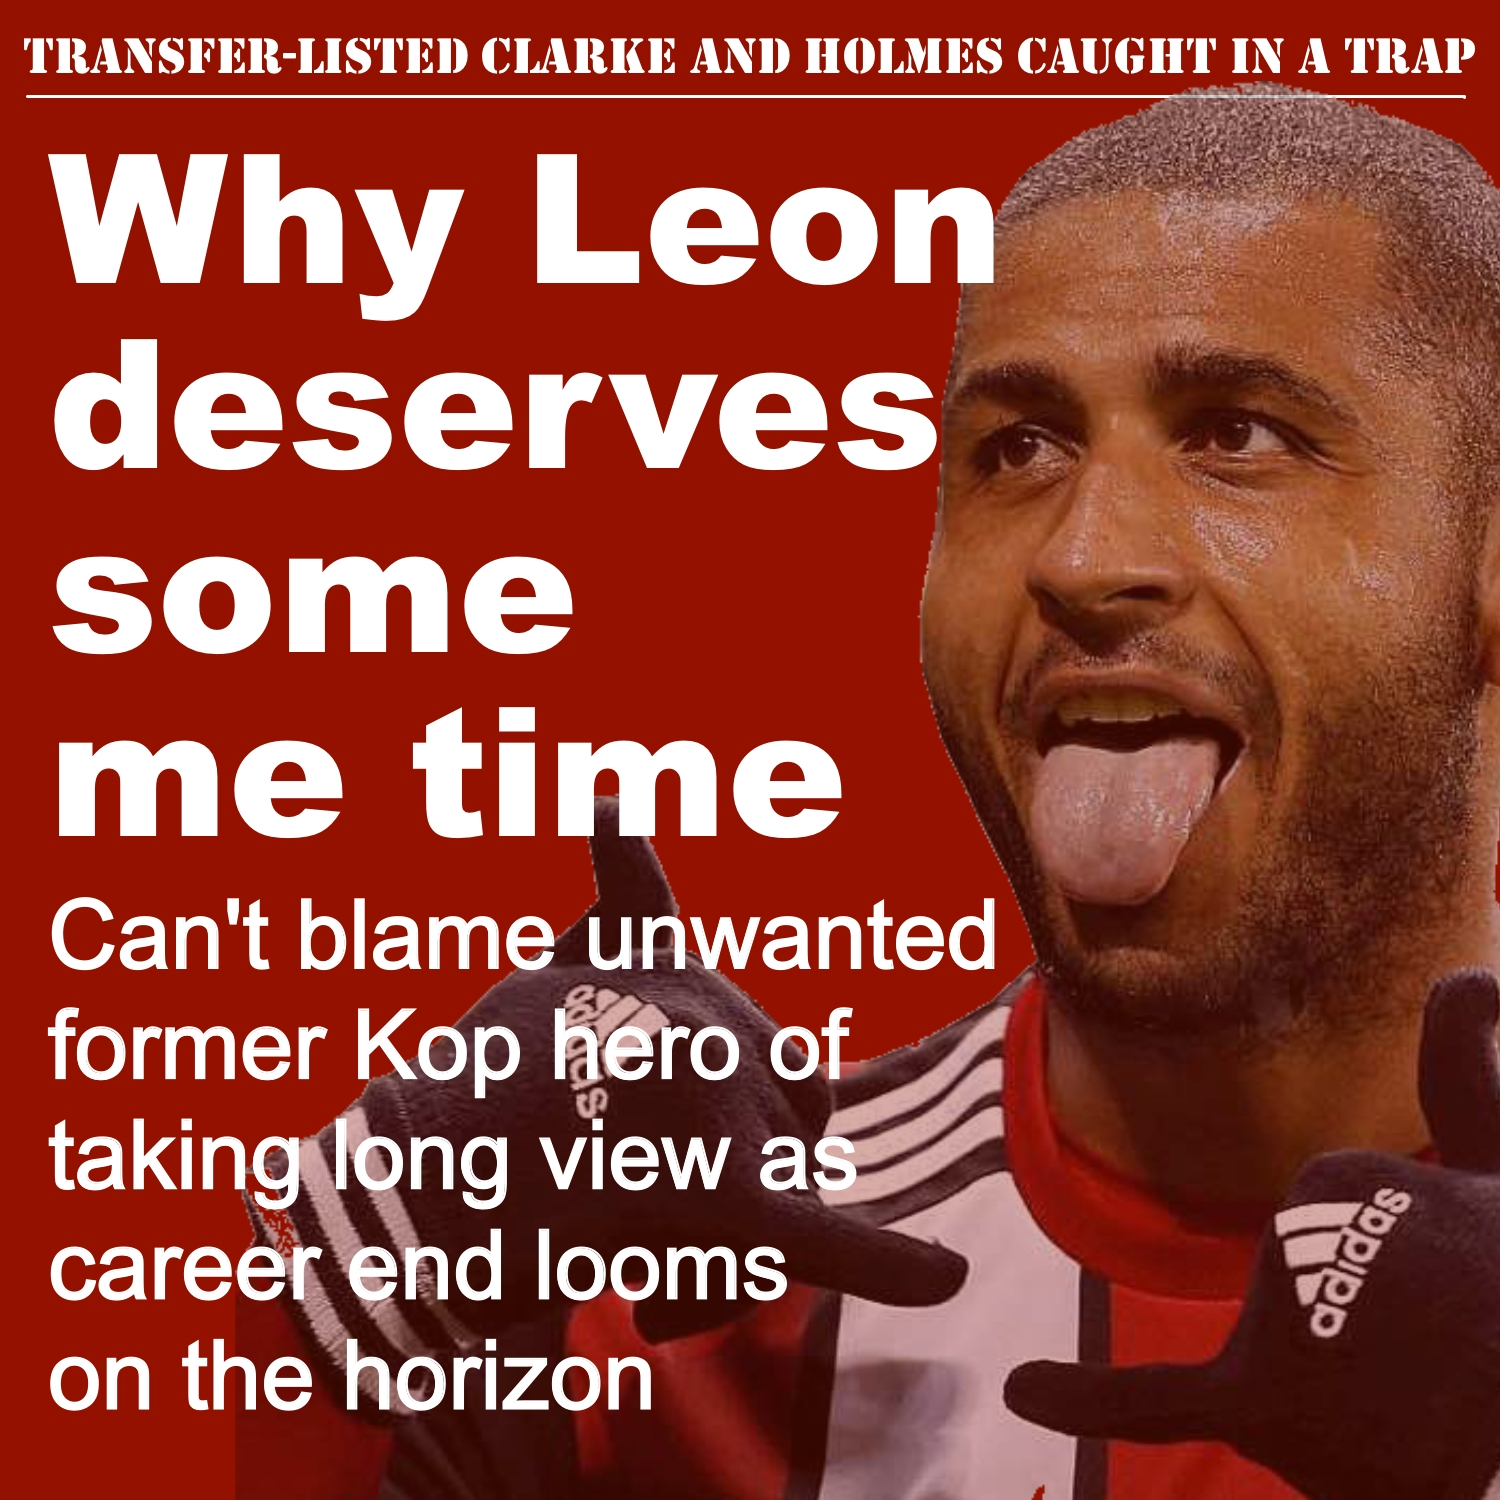 Why Sheffield United's unwanted striker deserves some me time at Bramall Lane